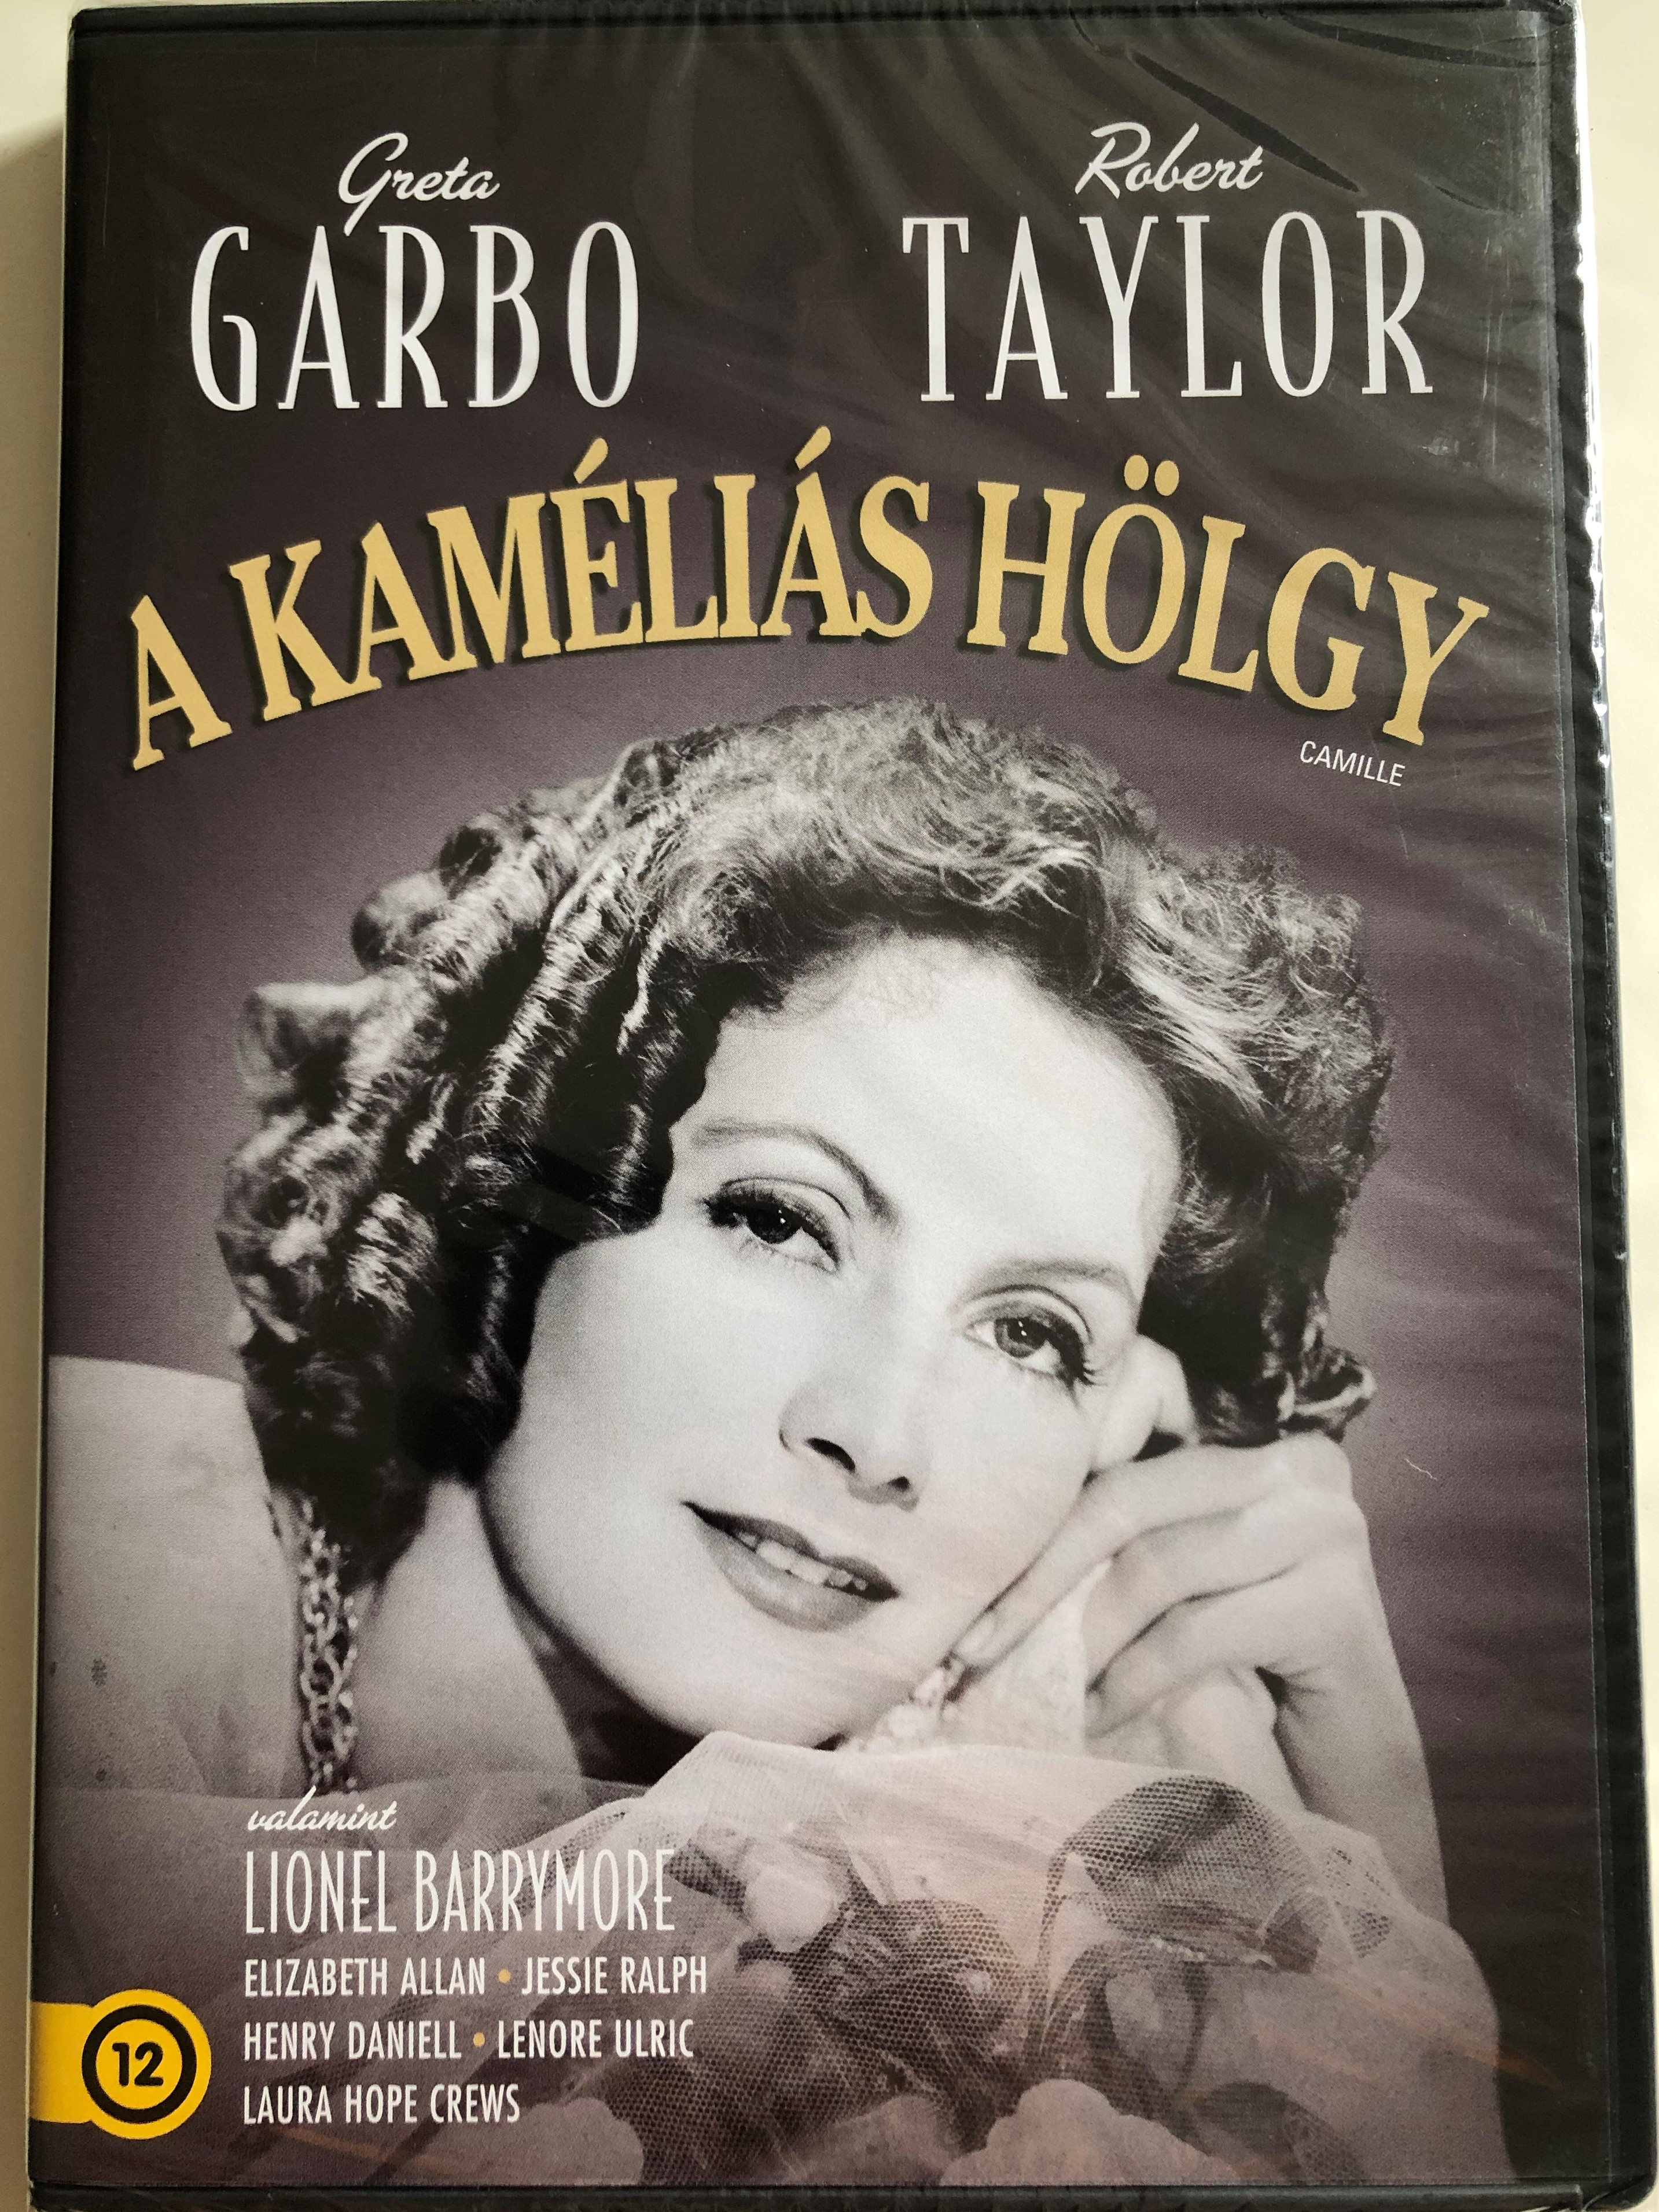 camille-dvd-1936-a-kam-li-s-h-lgy-directed-by-george-cukor-starring-greta-garbo-robert-taylor-lionel-barrymore-black-white-classic-1-.jpg